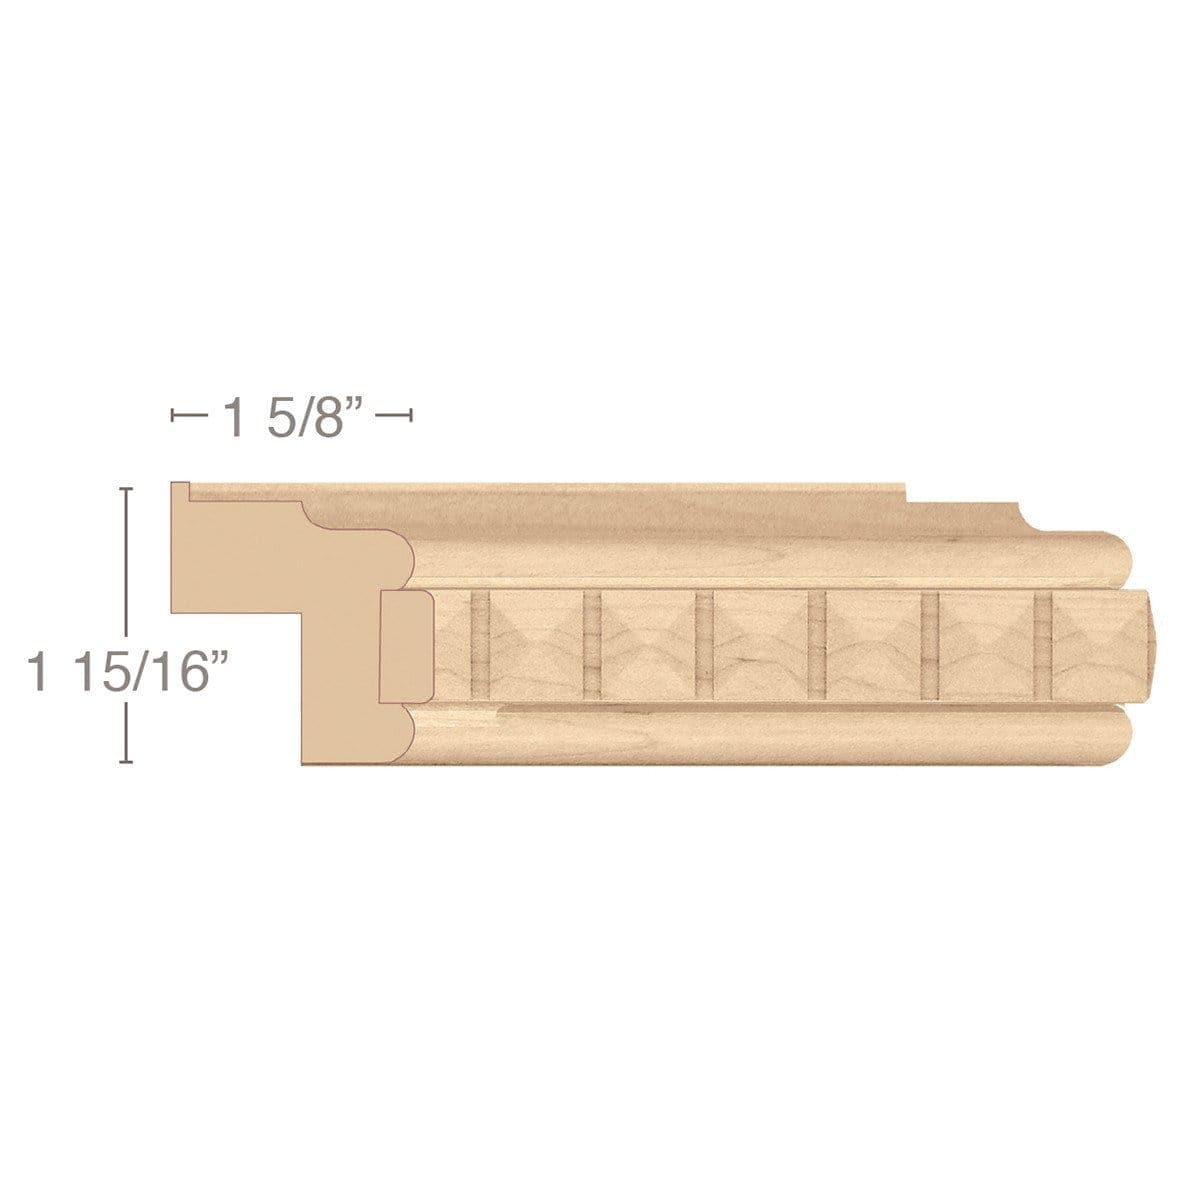 "Traditional Light Rail Moulding With Pinnacle Insert, 1 15/16""w x 1 5/8""d x 8' length"